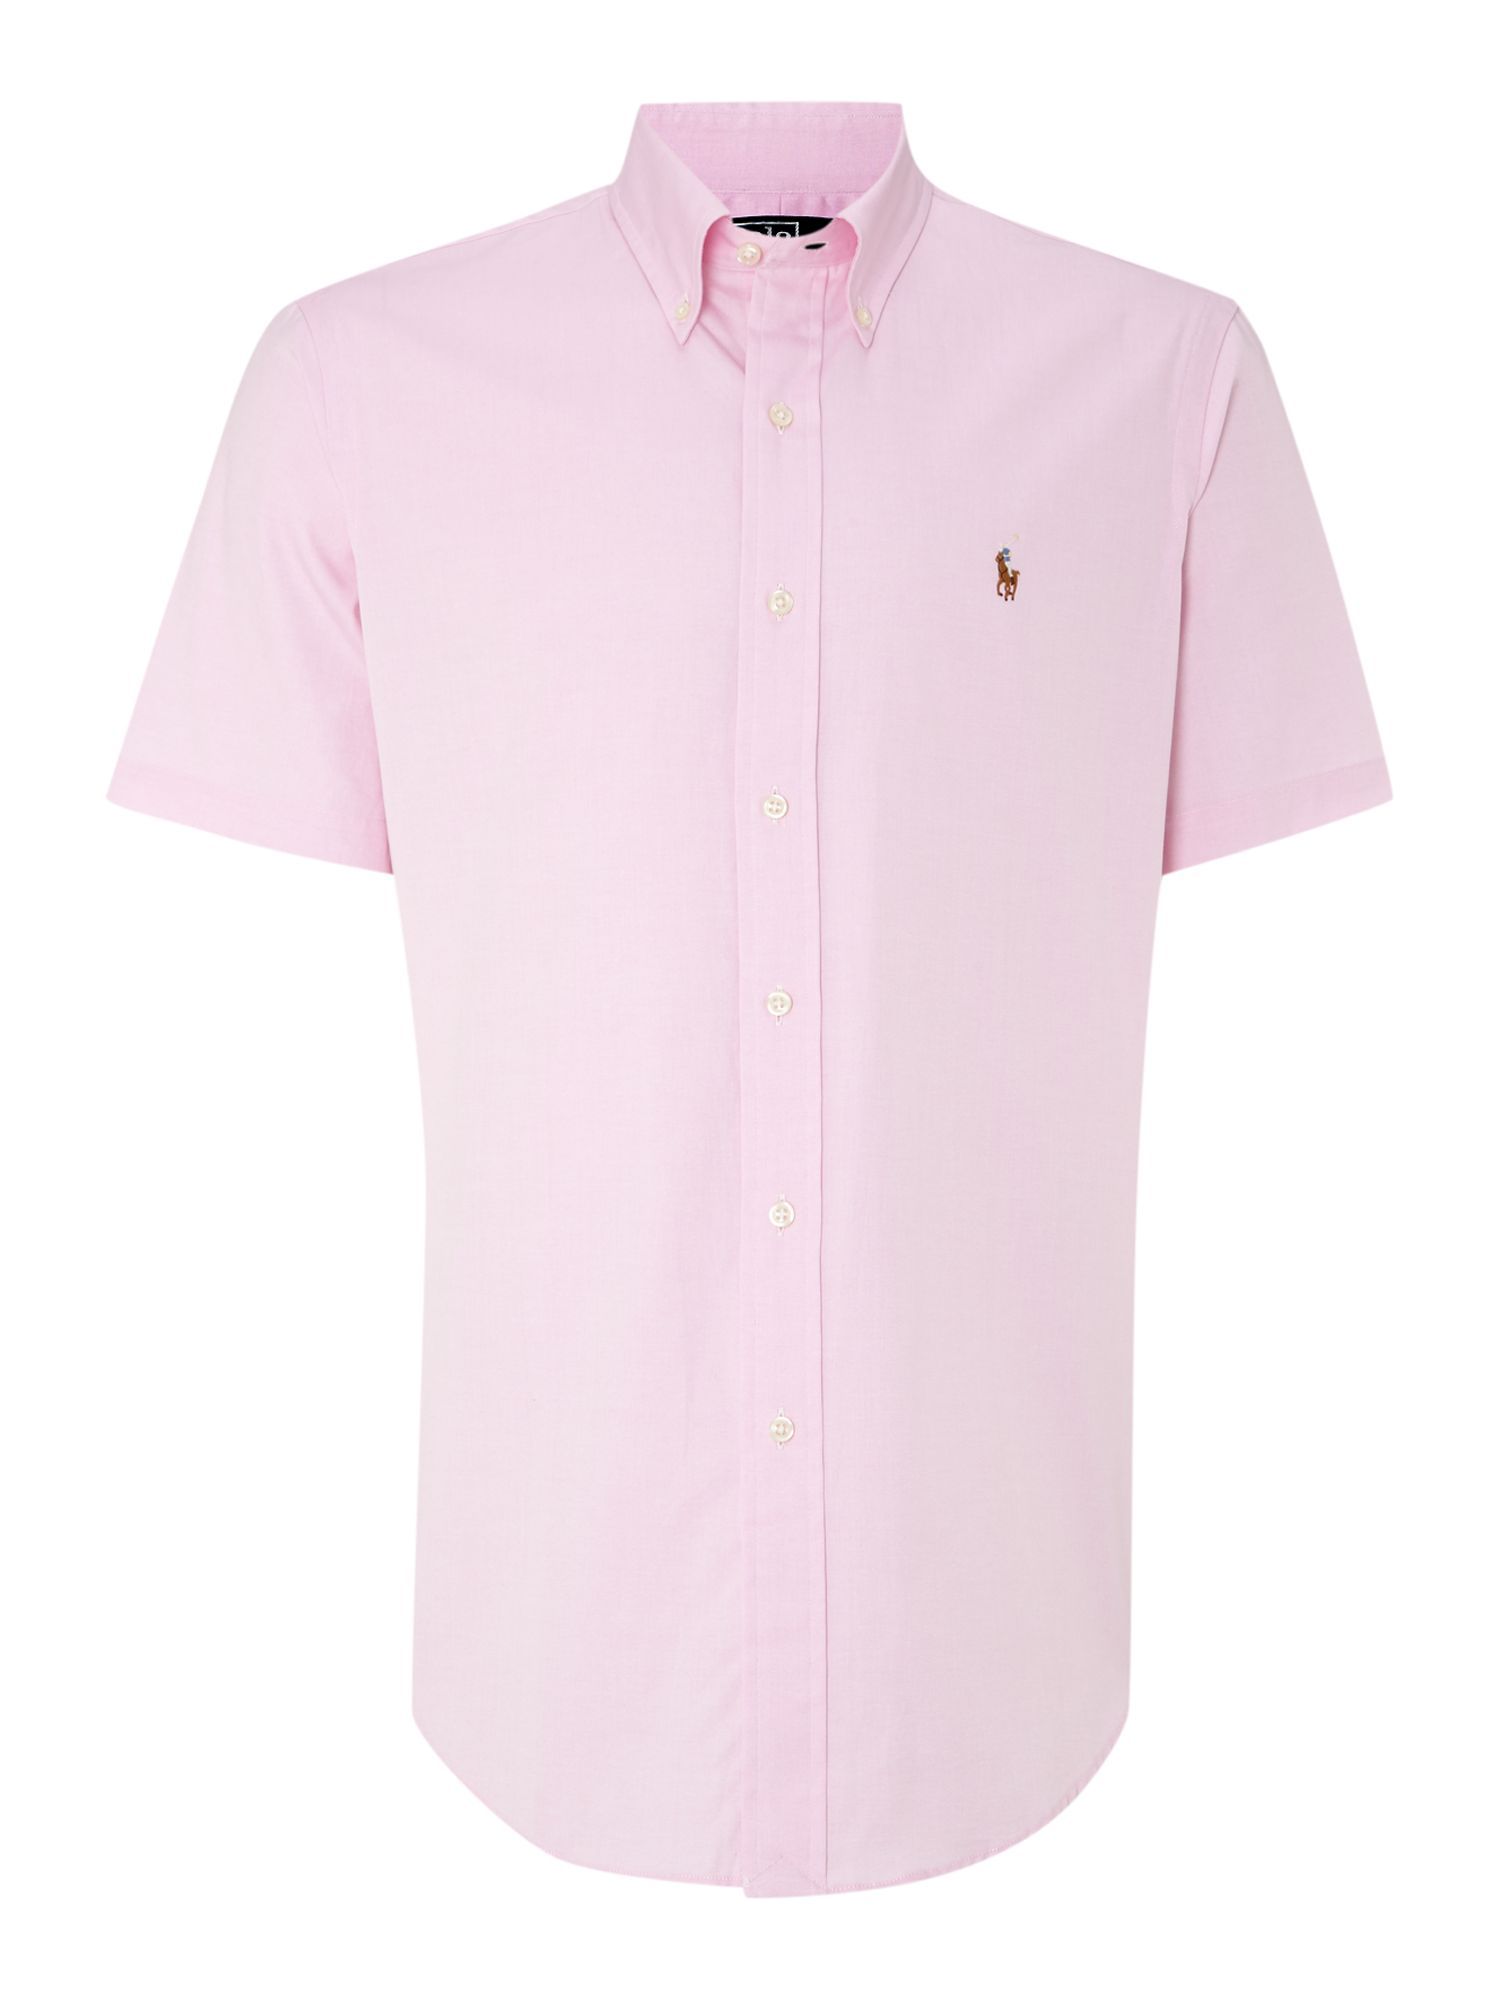 Classic short sleeve custom fit oxford shirt